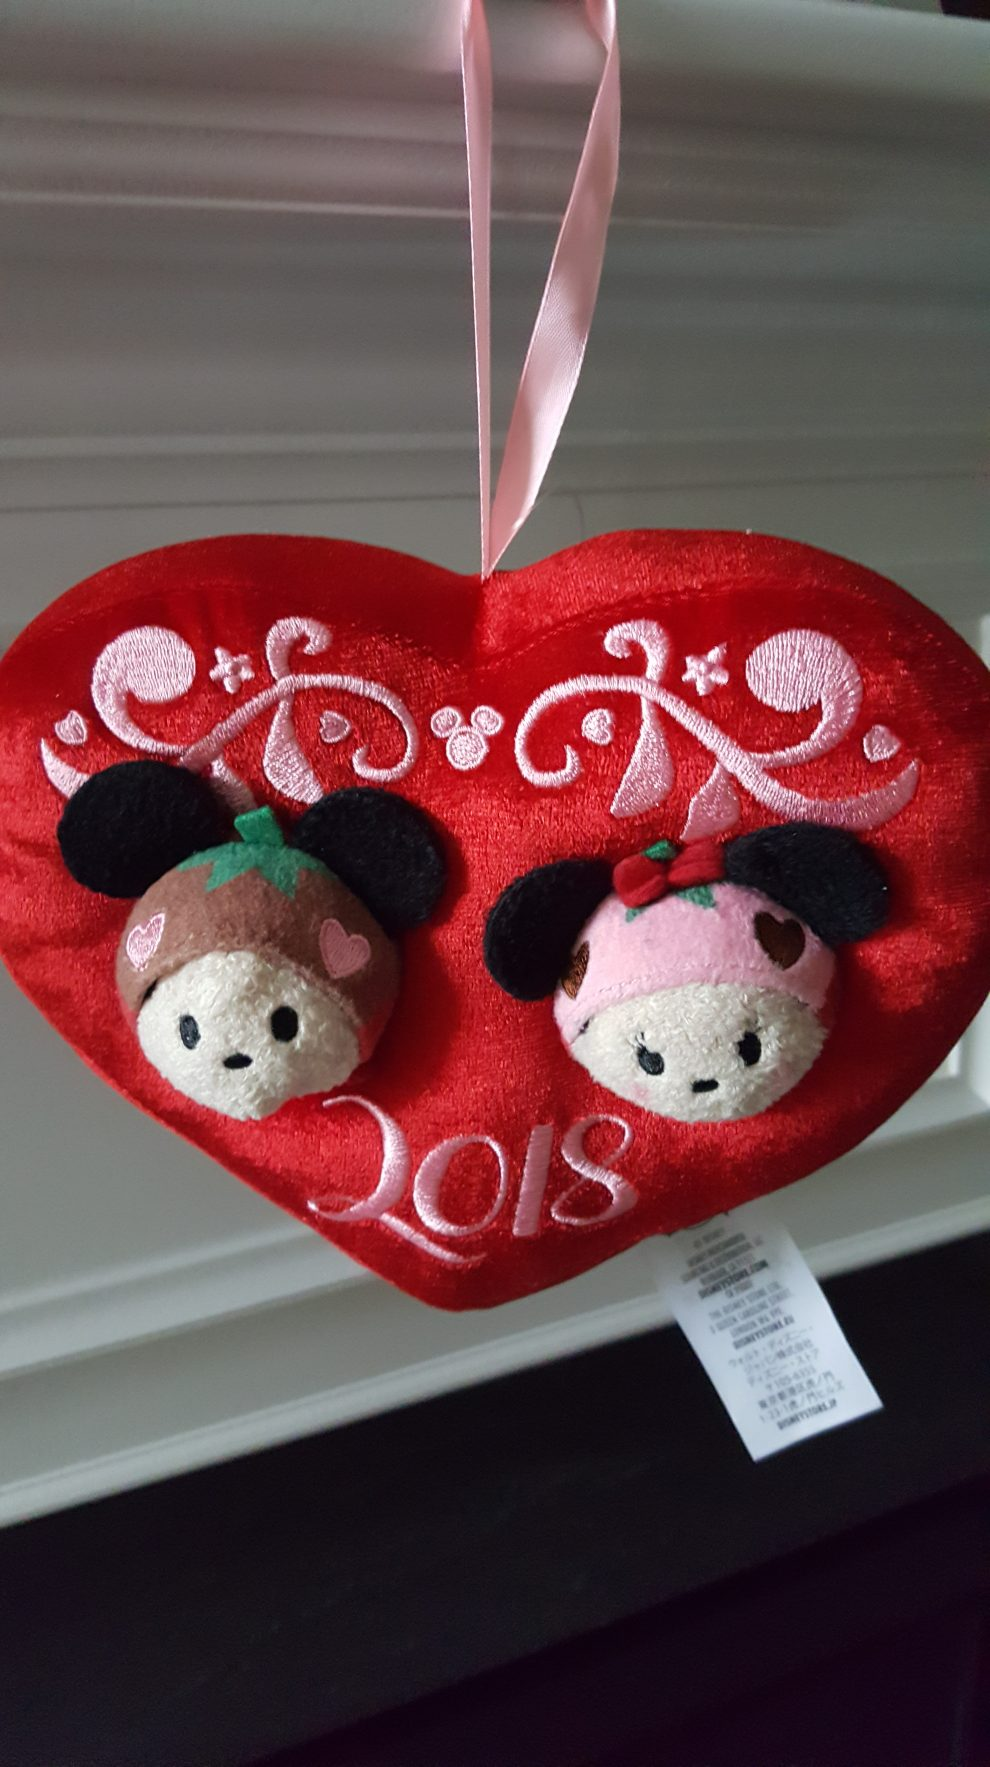 share the disney love with someone special this valentines day with gifts from shopdisney - Valentine Day Special